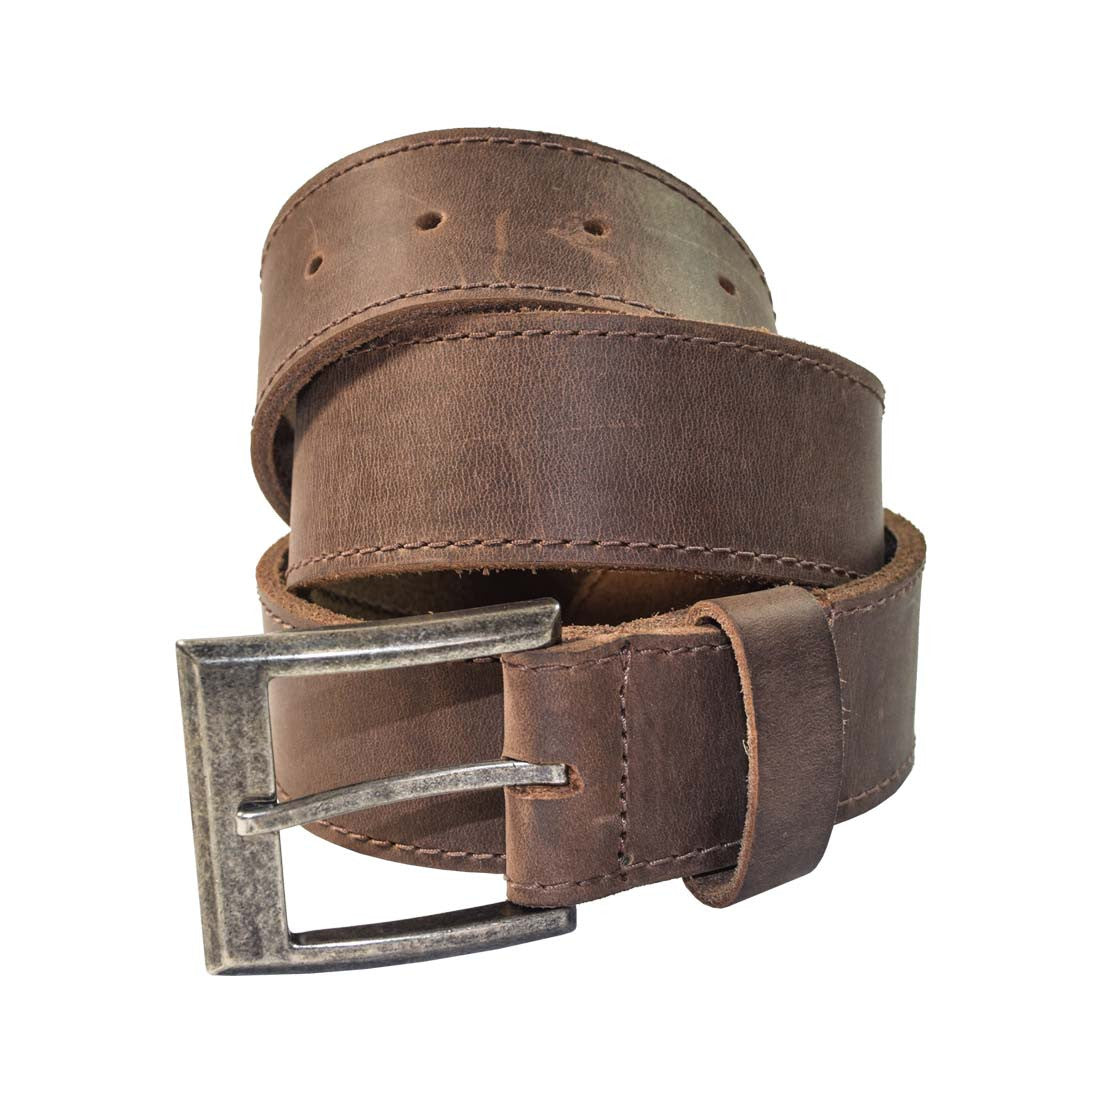 14b9b2013a8 Men's Thick Leather Belt With Inner Pocket - Hide & Drink